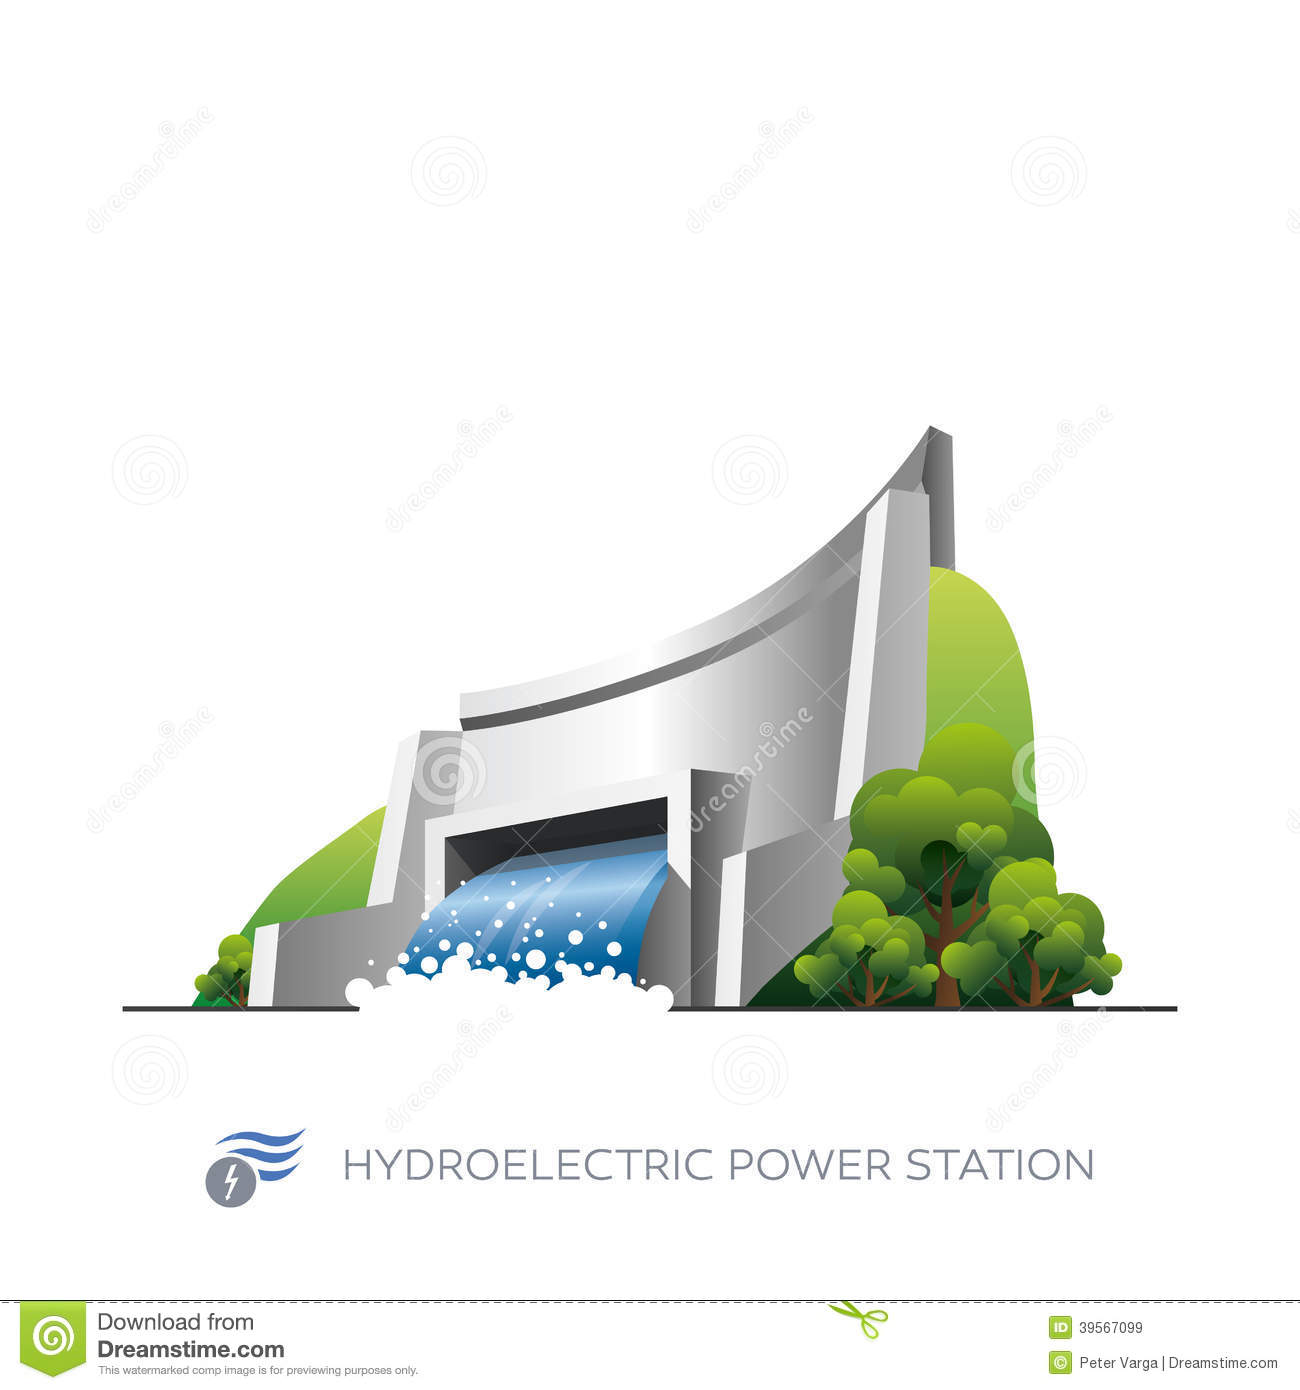 Hydroelectric Power Station Isolated White Background Cartoon Style